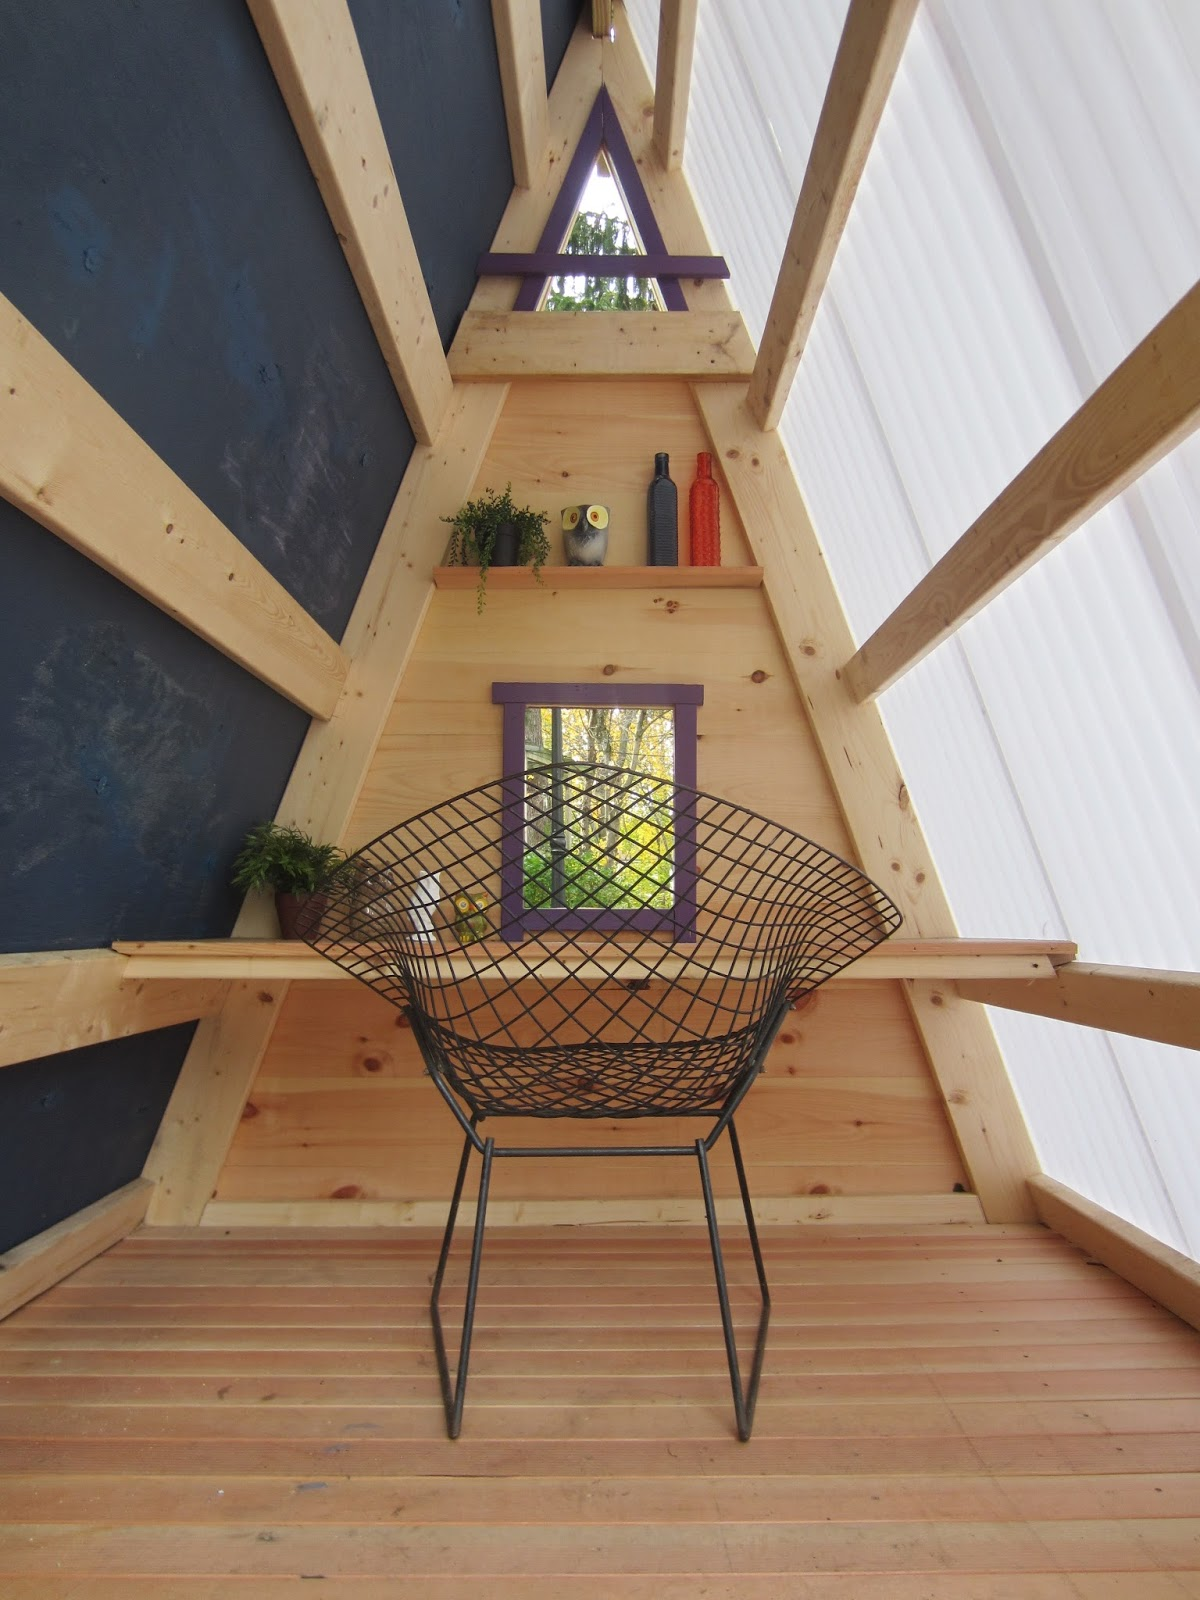 Micro Home Designs: Relaxshacks.com: A THREE DAY, HANDS-ON Building And Design